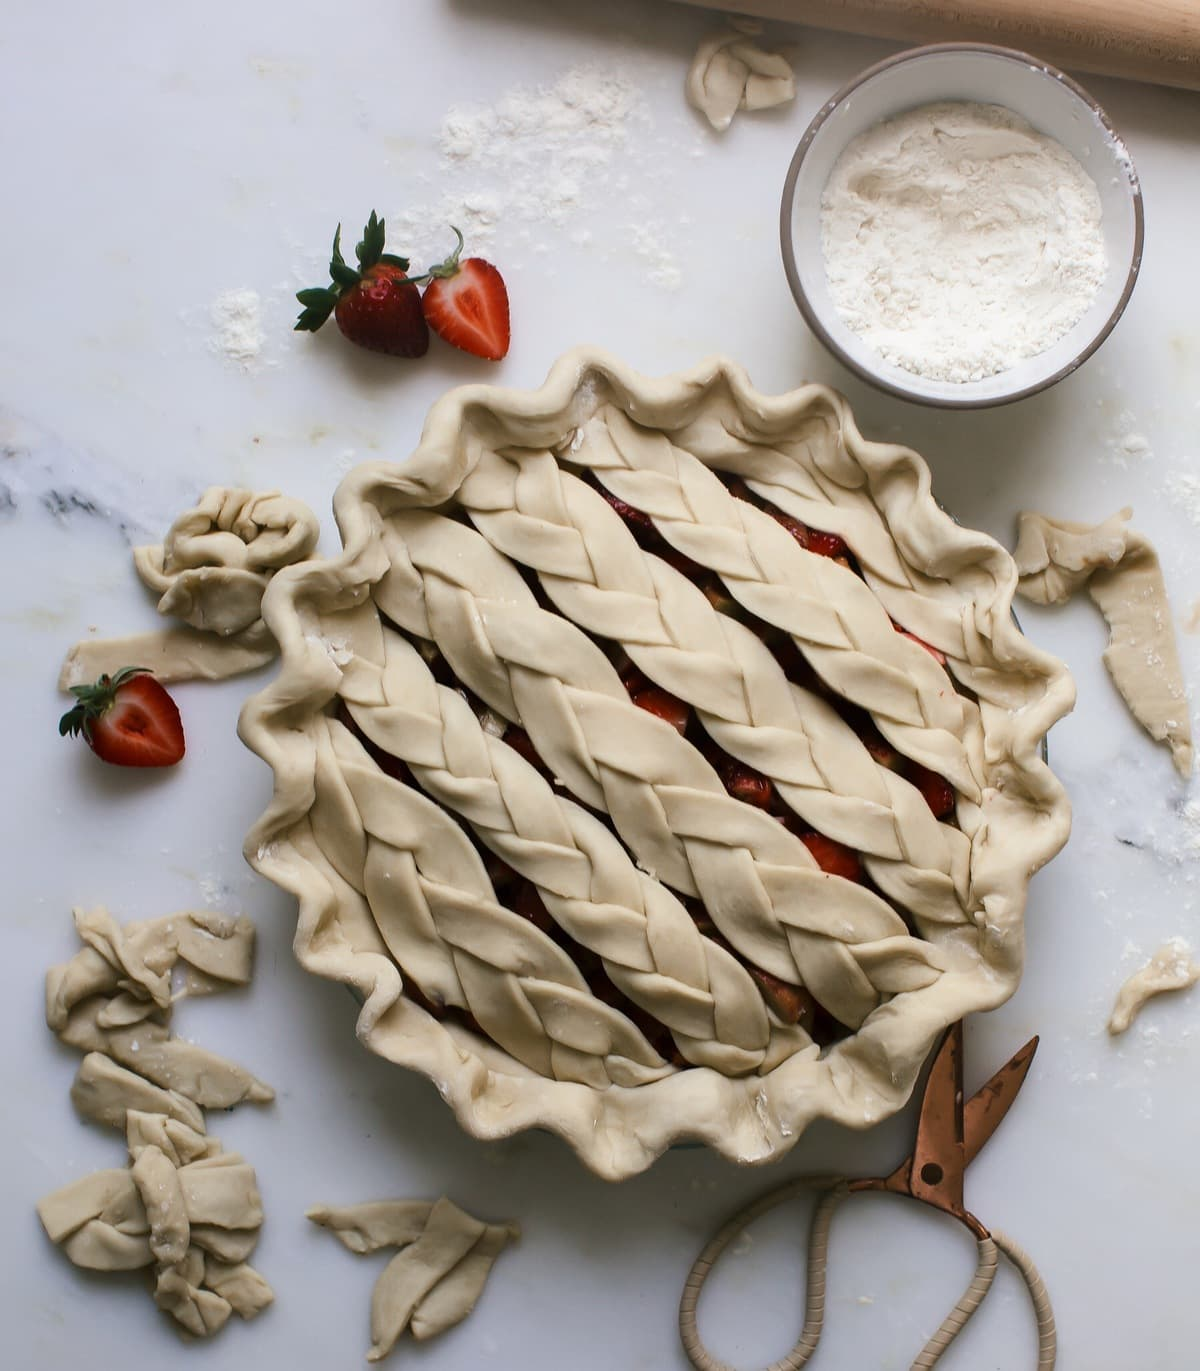 Strawberry Rhubarb Braided Pie